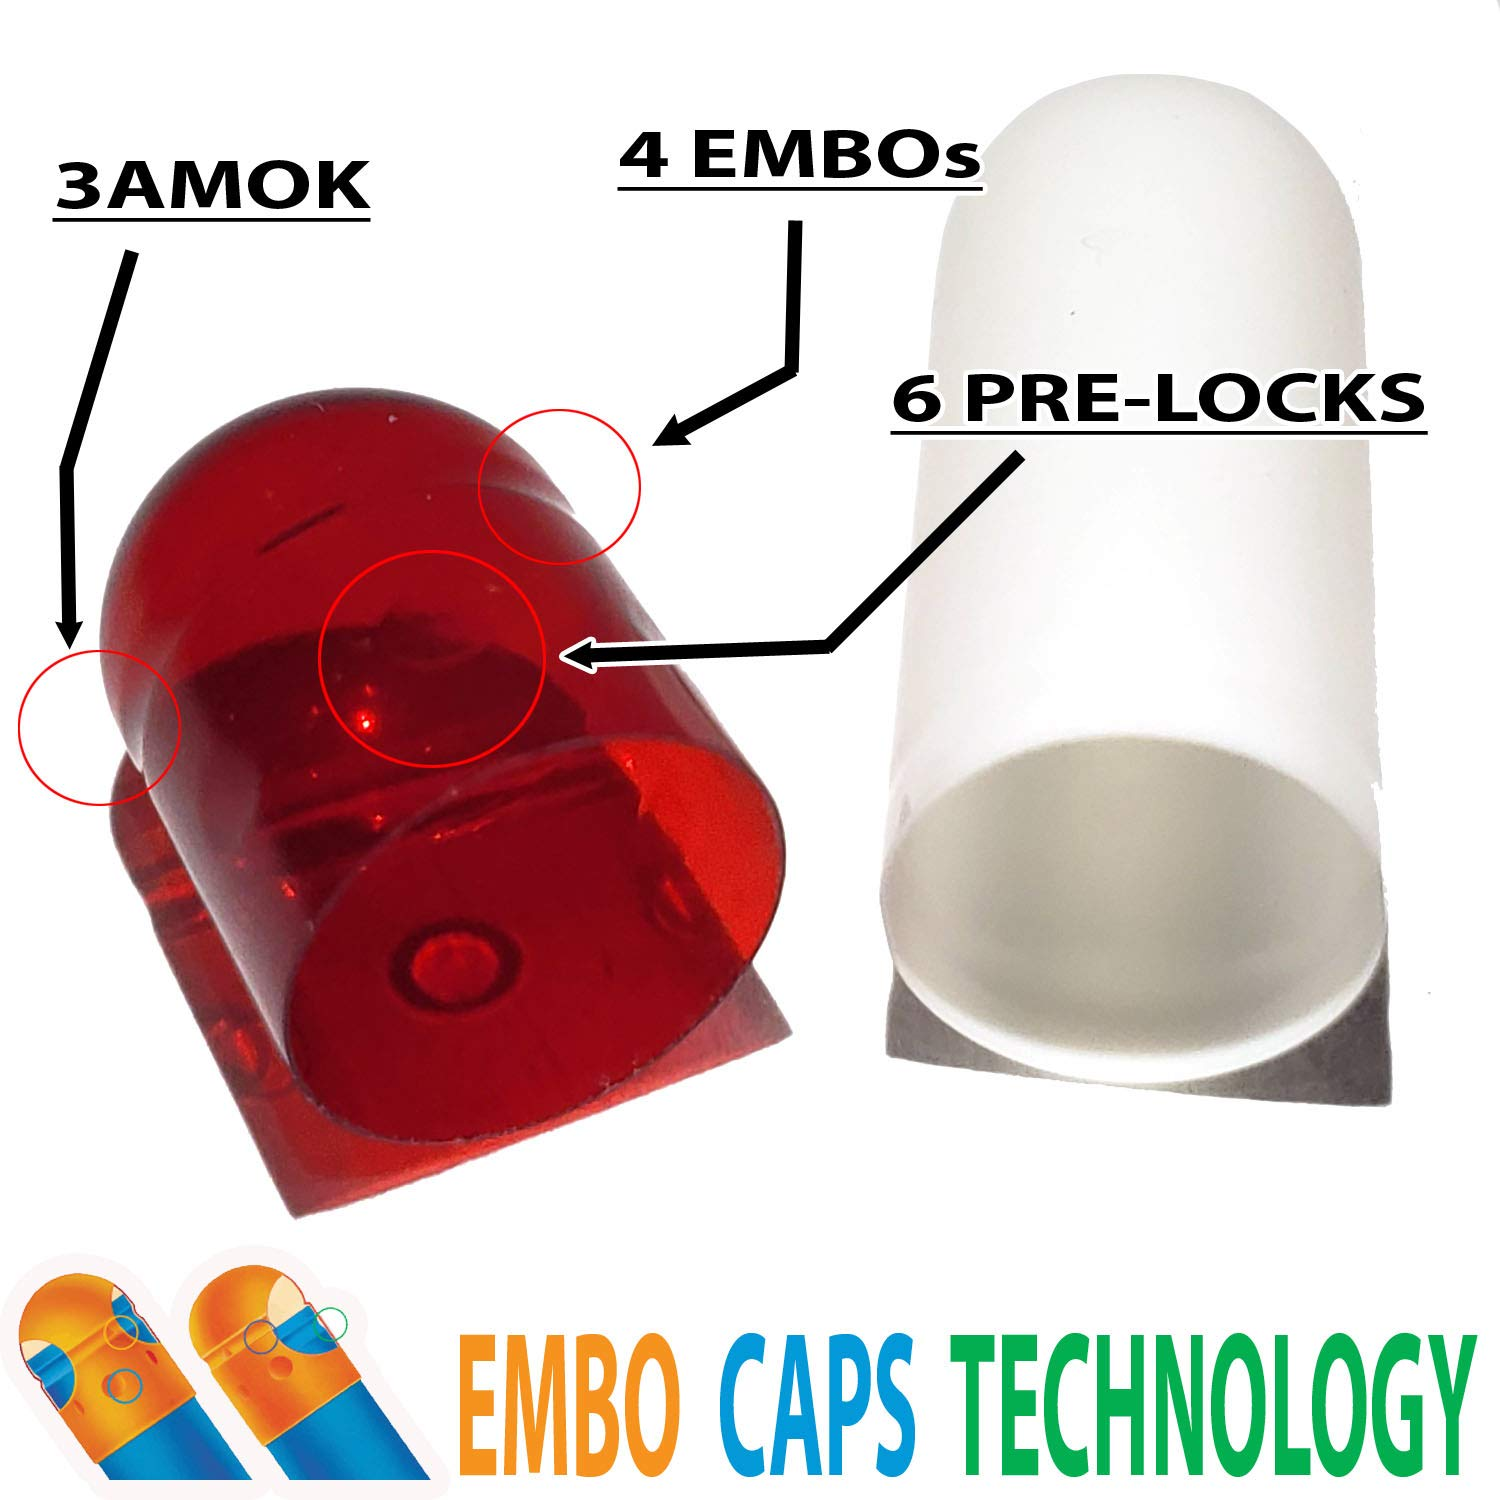 Capsules World - Empty Gelatin Capsules 0 Size - 1000 Count, Red White Color, Premium EMBO Caps Technology, Compatible with Capsule Filling Machine & Capsule Pill Gel Filler